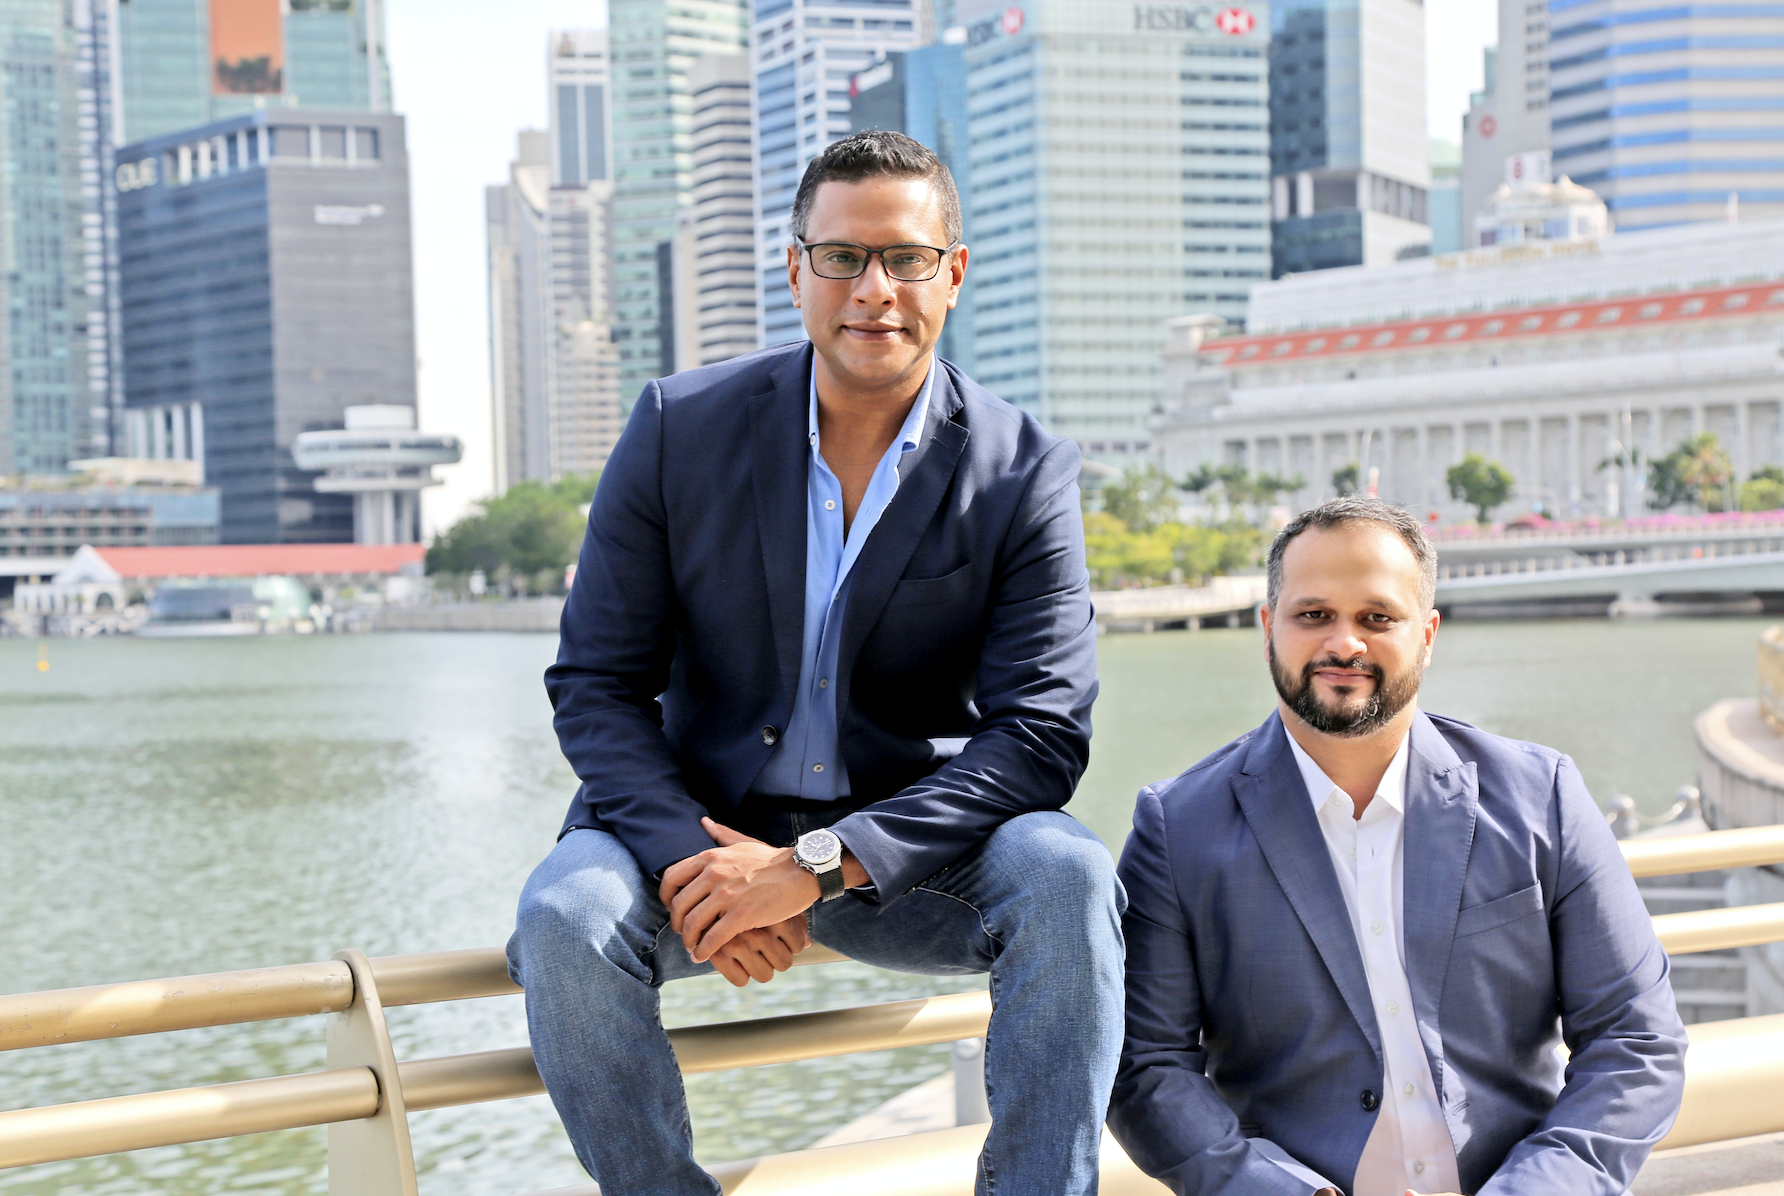 Singapore-based NRI media entrepreneurs & co-founders of VMAC, Saurabh Gupta and Abhayanand Singh. Photo courtesy: VMAC